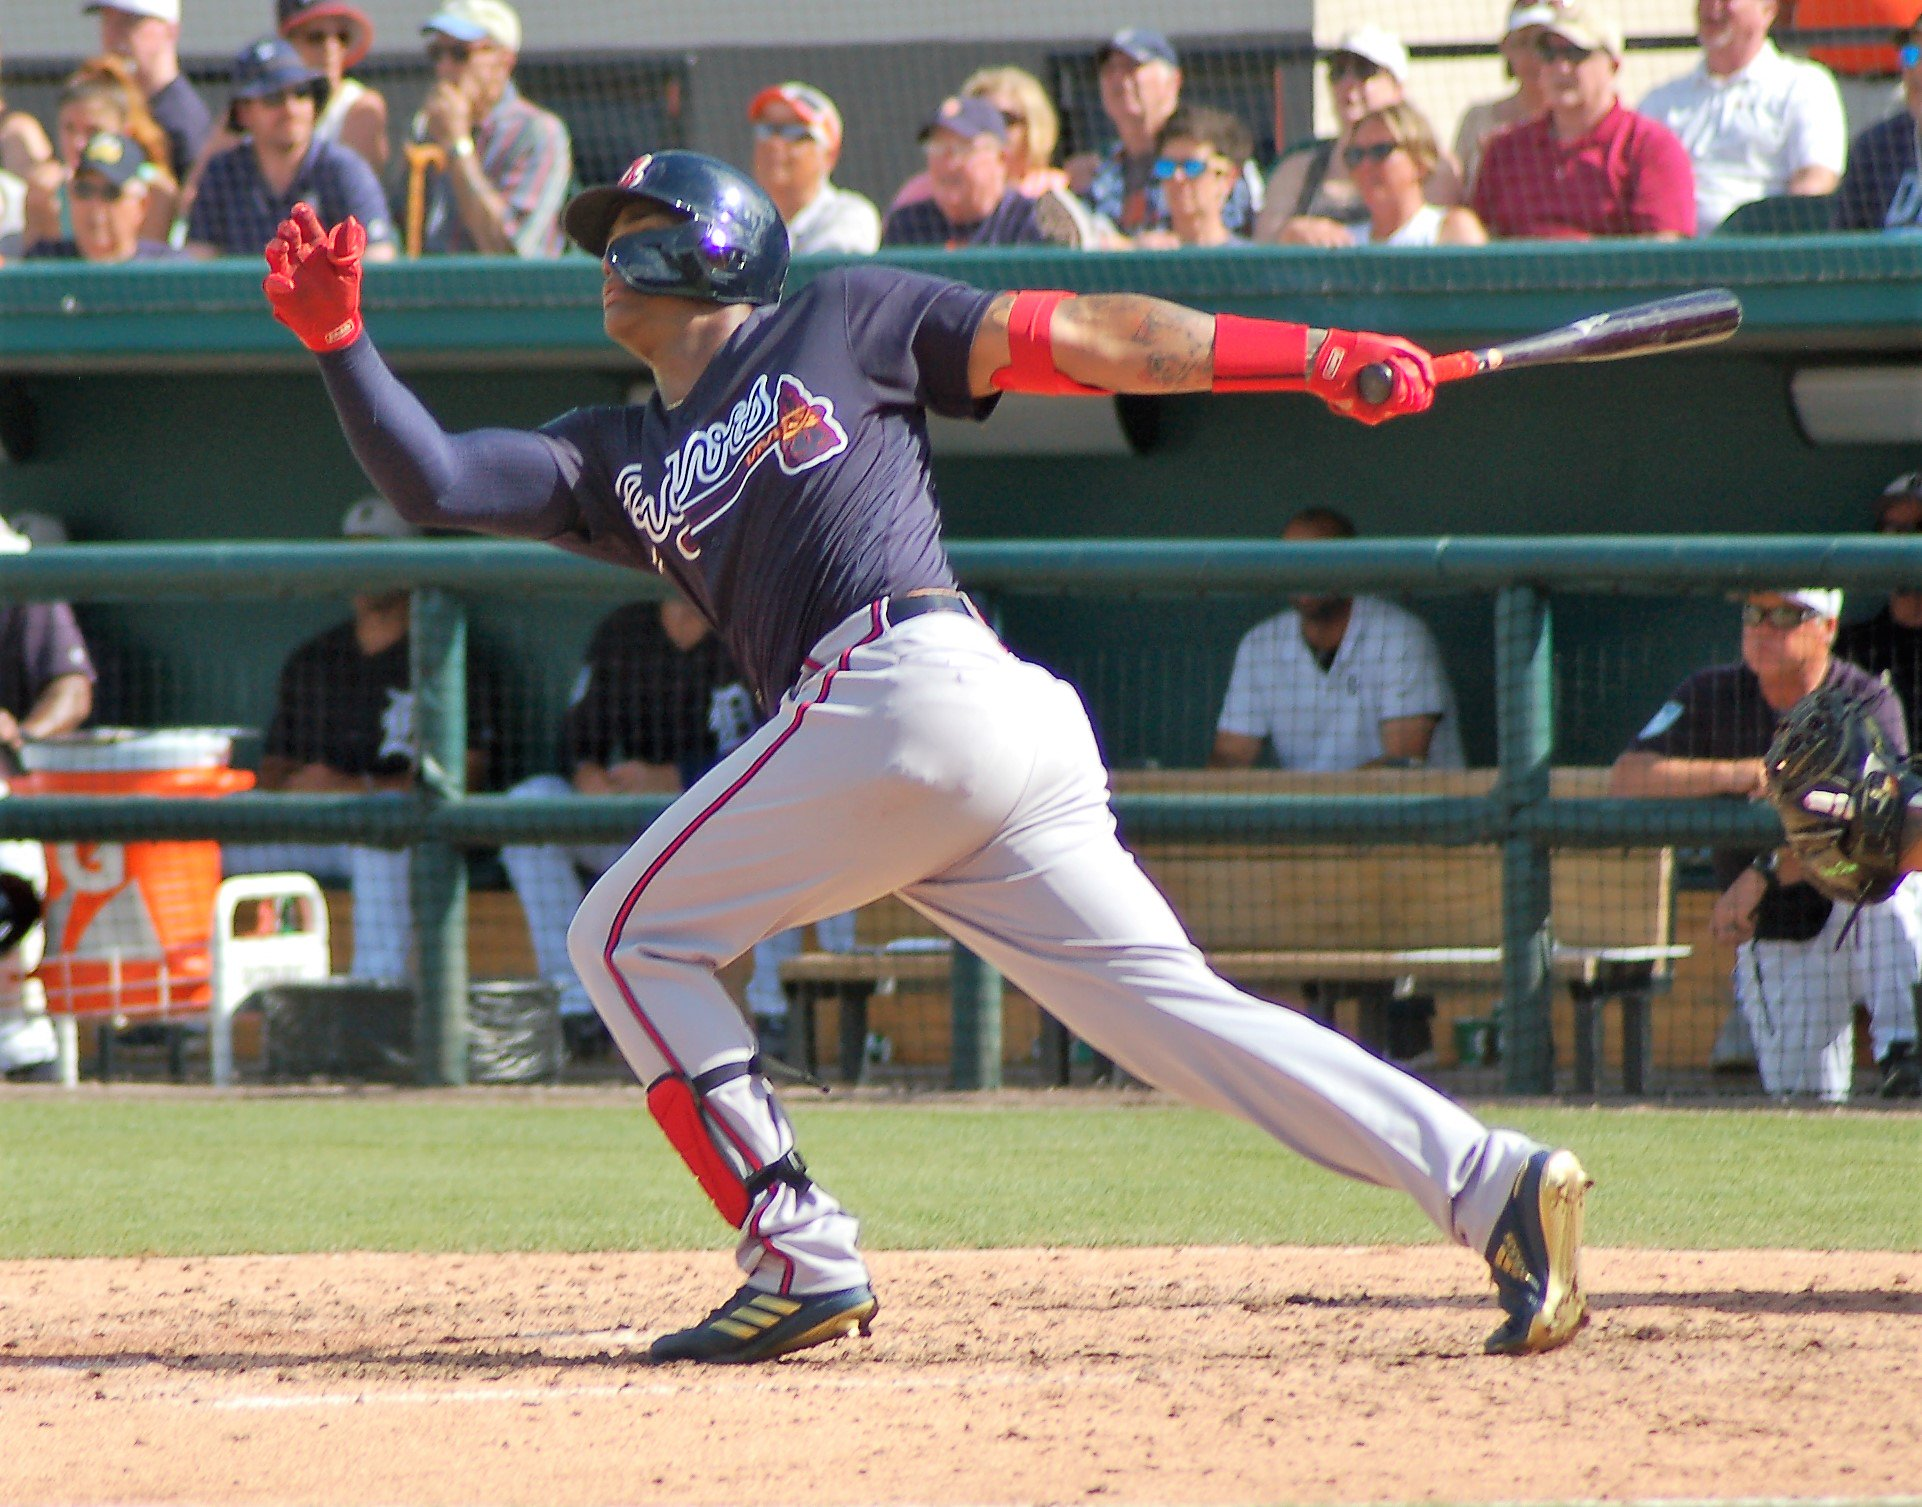 Morning Walk - Pache Continues to Sizzle for Braves